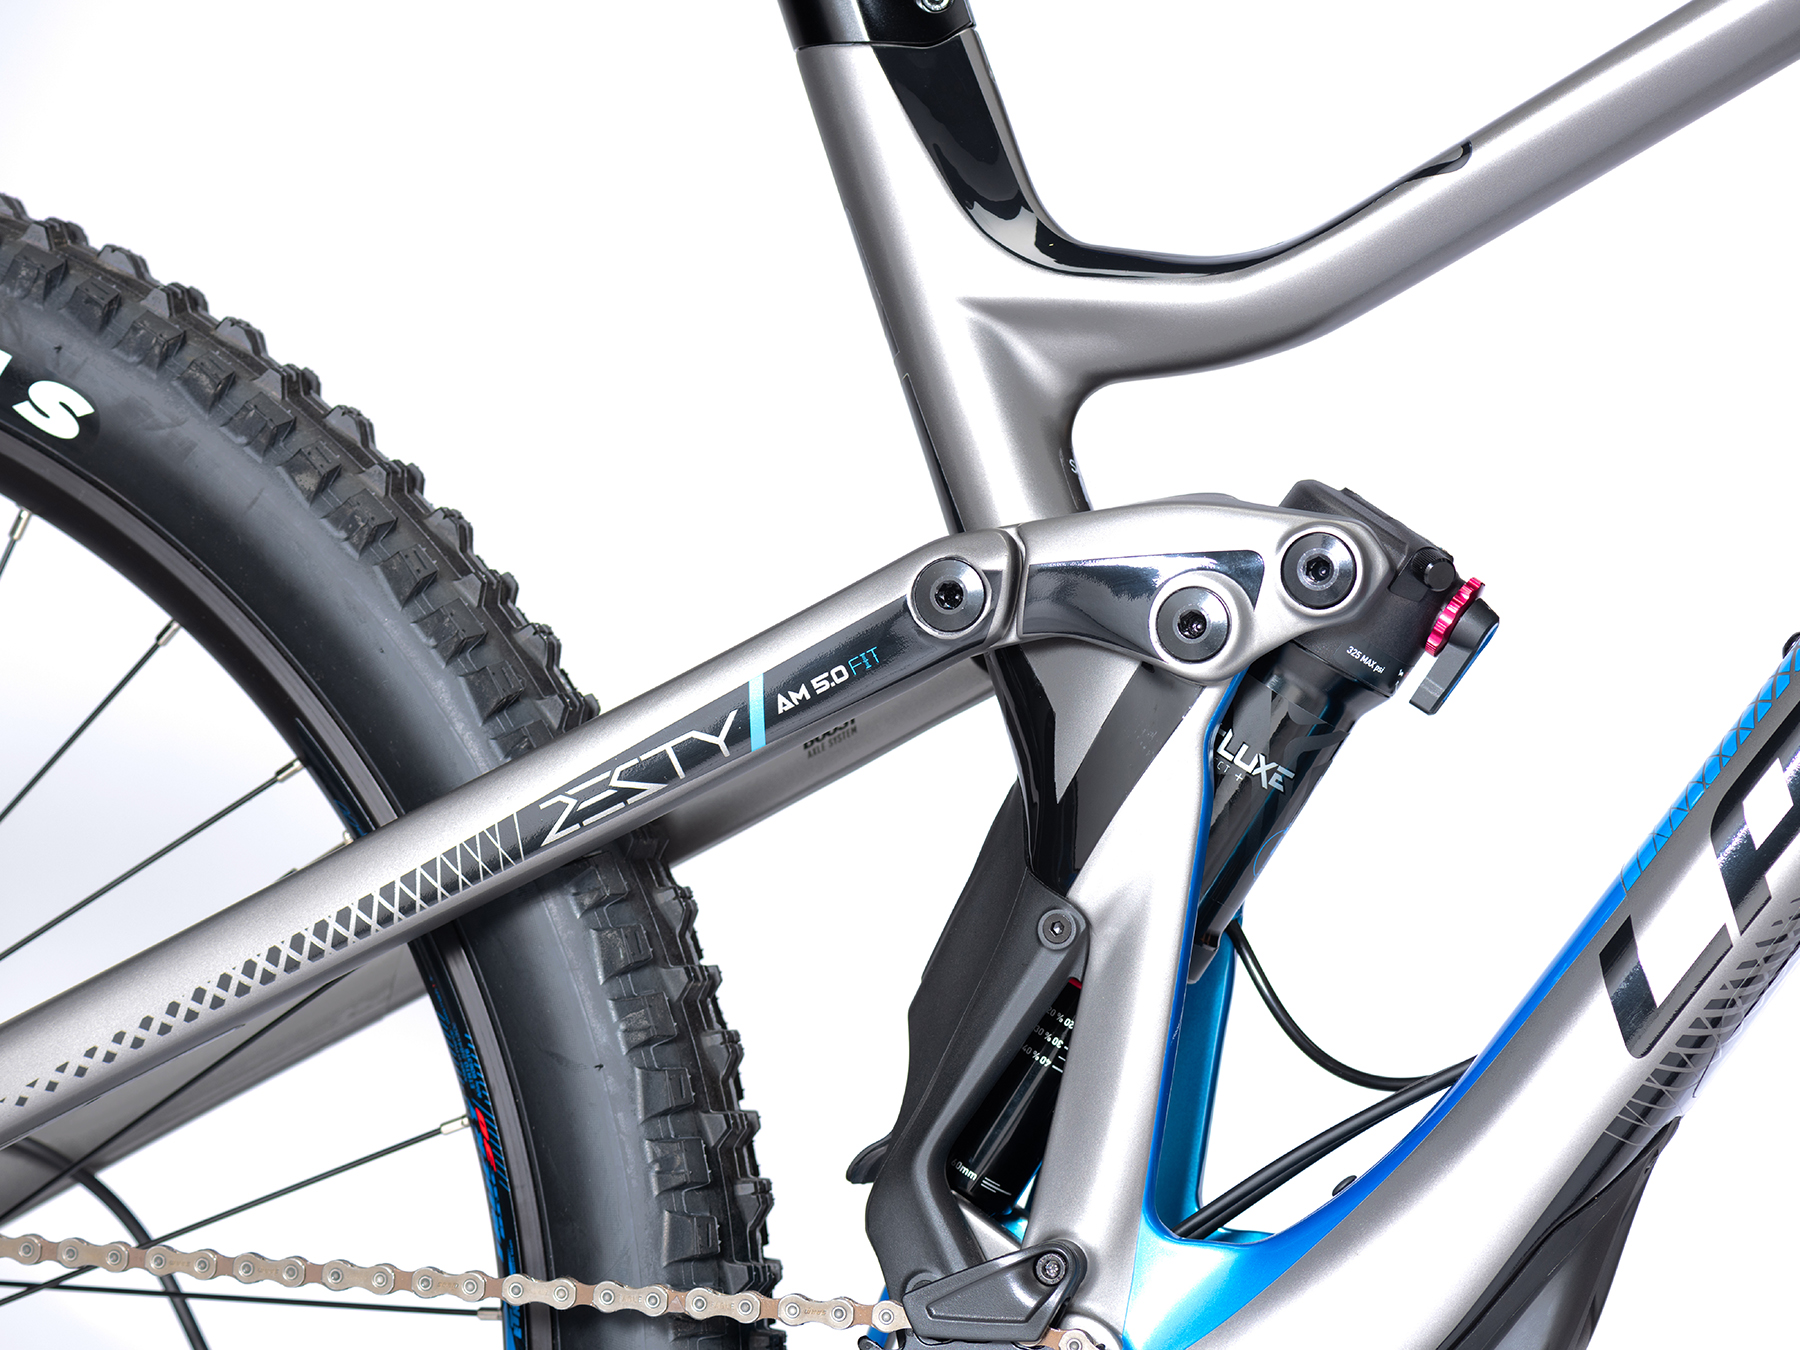 Lapierre Zesty AM Fit 5.0 2020 M2B All-Mountain 2